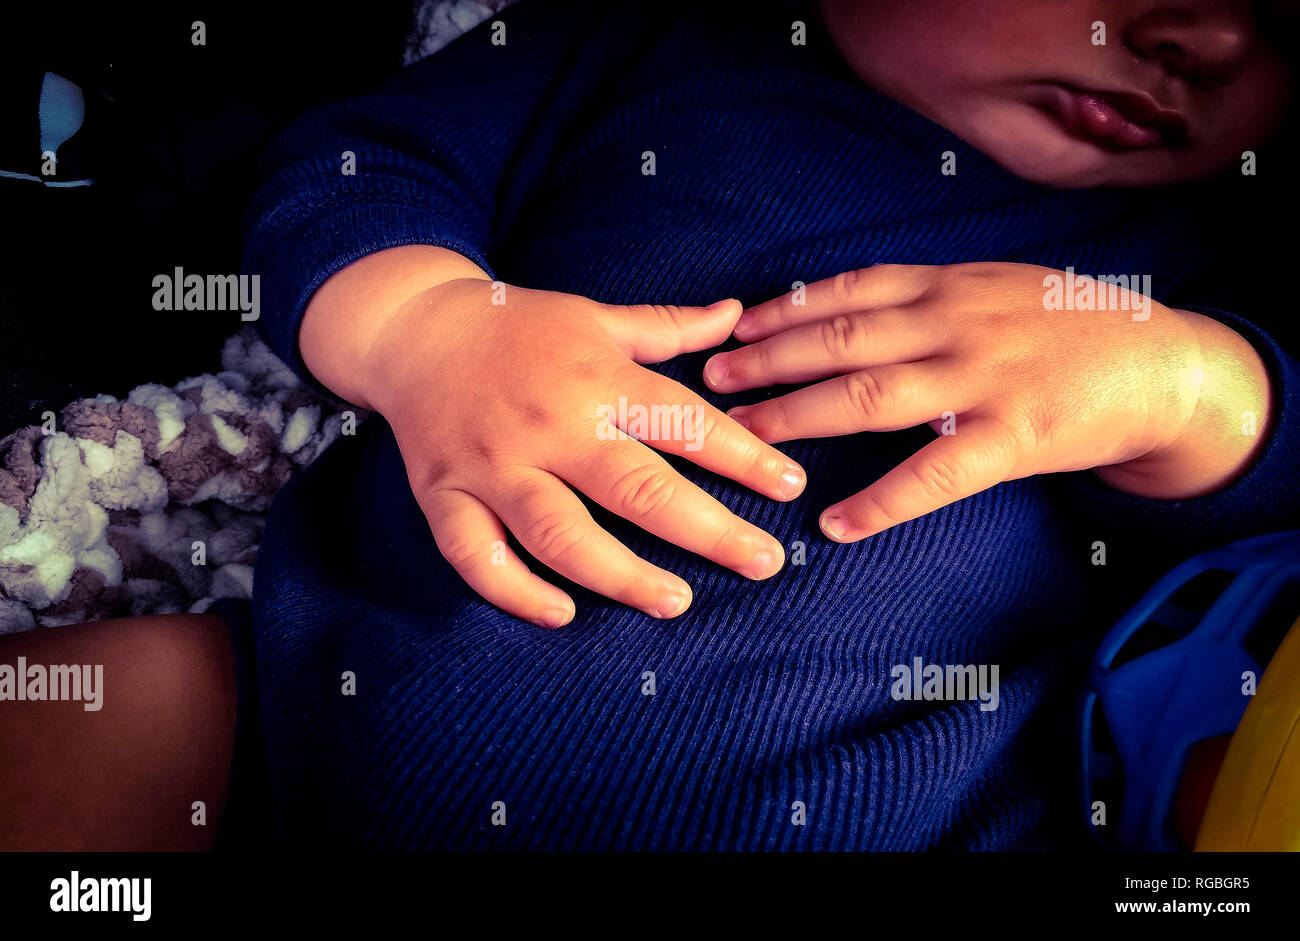 A toddler's relaxed hands indicate deep sleep and contentment, Nova Scotia, Canada - Stock Image